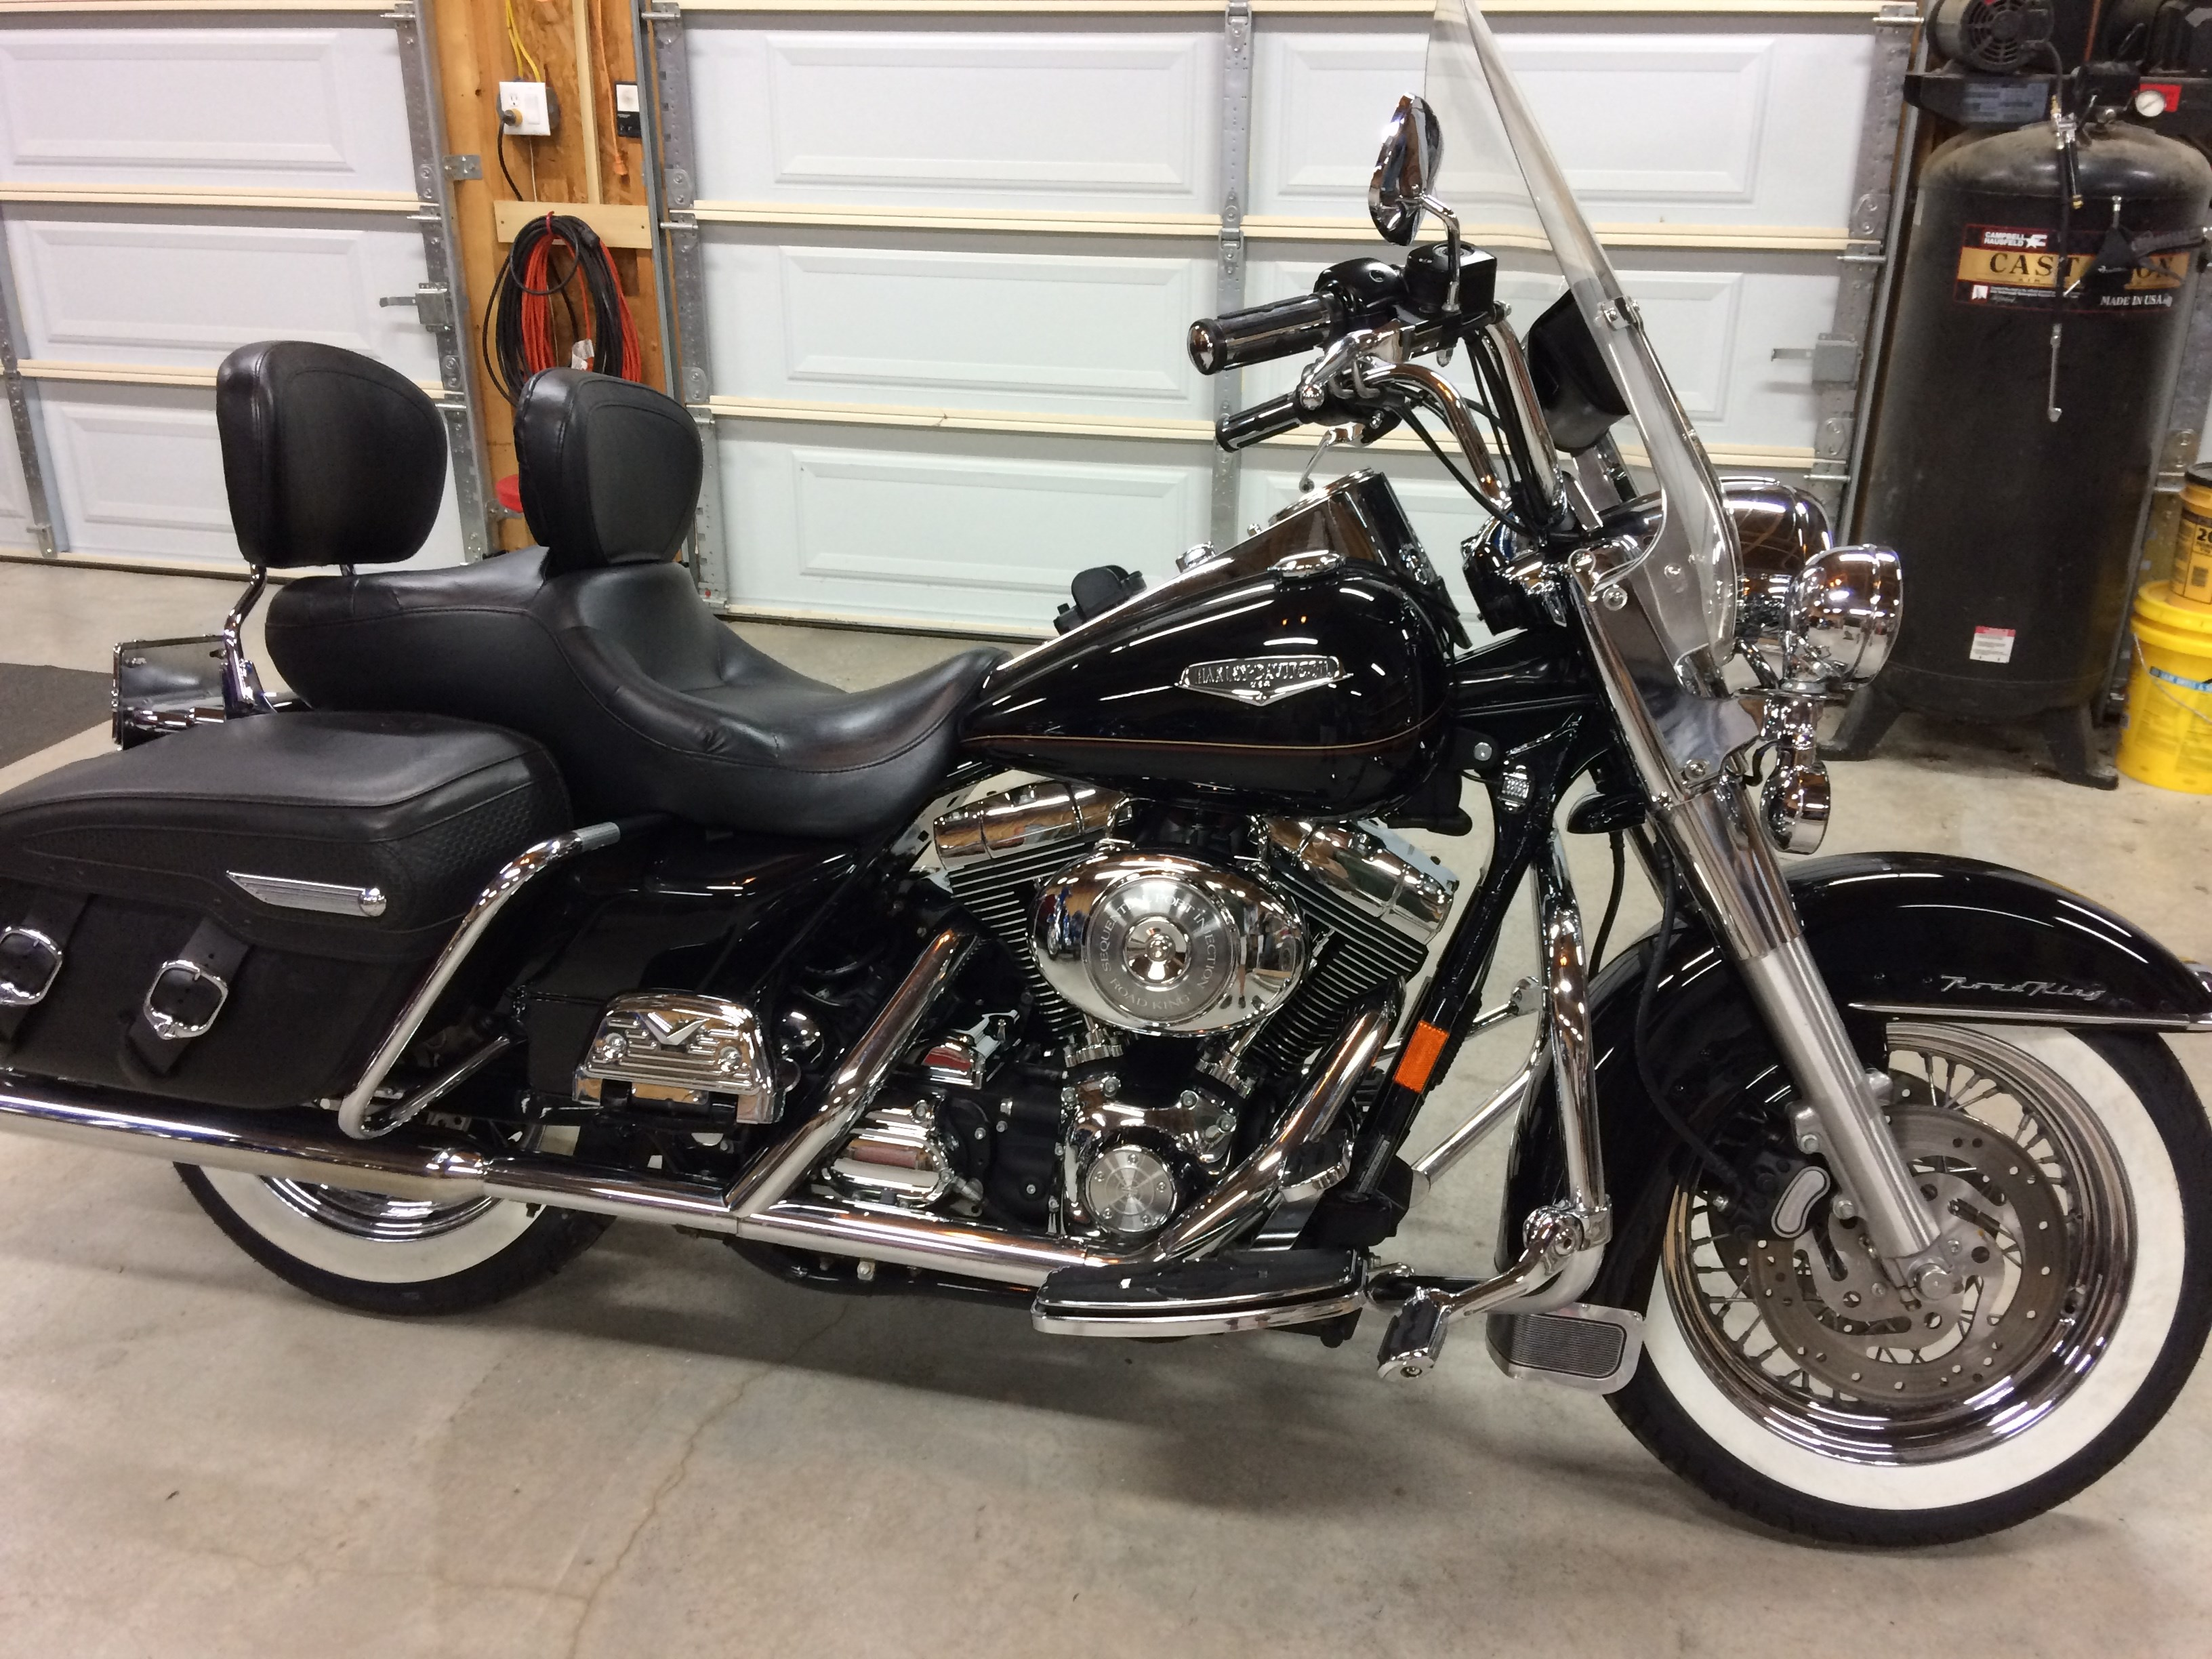 2017 Harley Dealer San Diego >> All New & Used Harley-Davidson® Touring Road King Classic® For Sale (289 Bikes, Page 1 ...